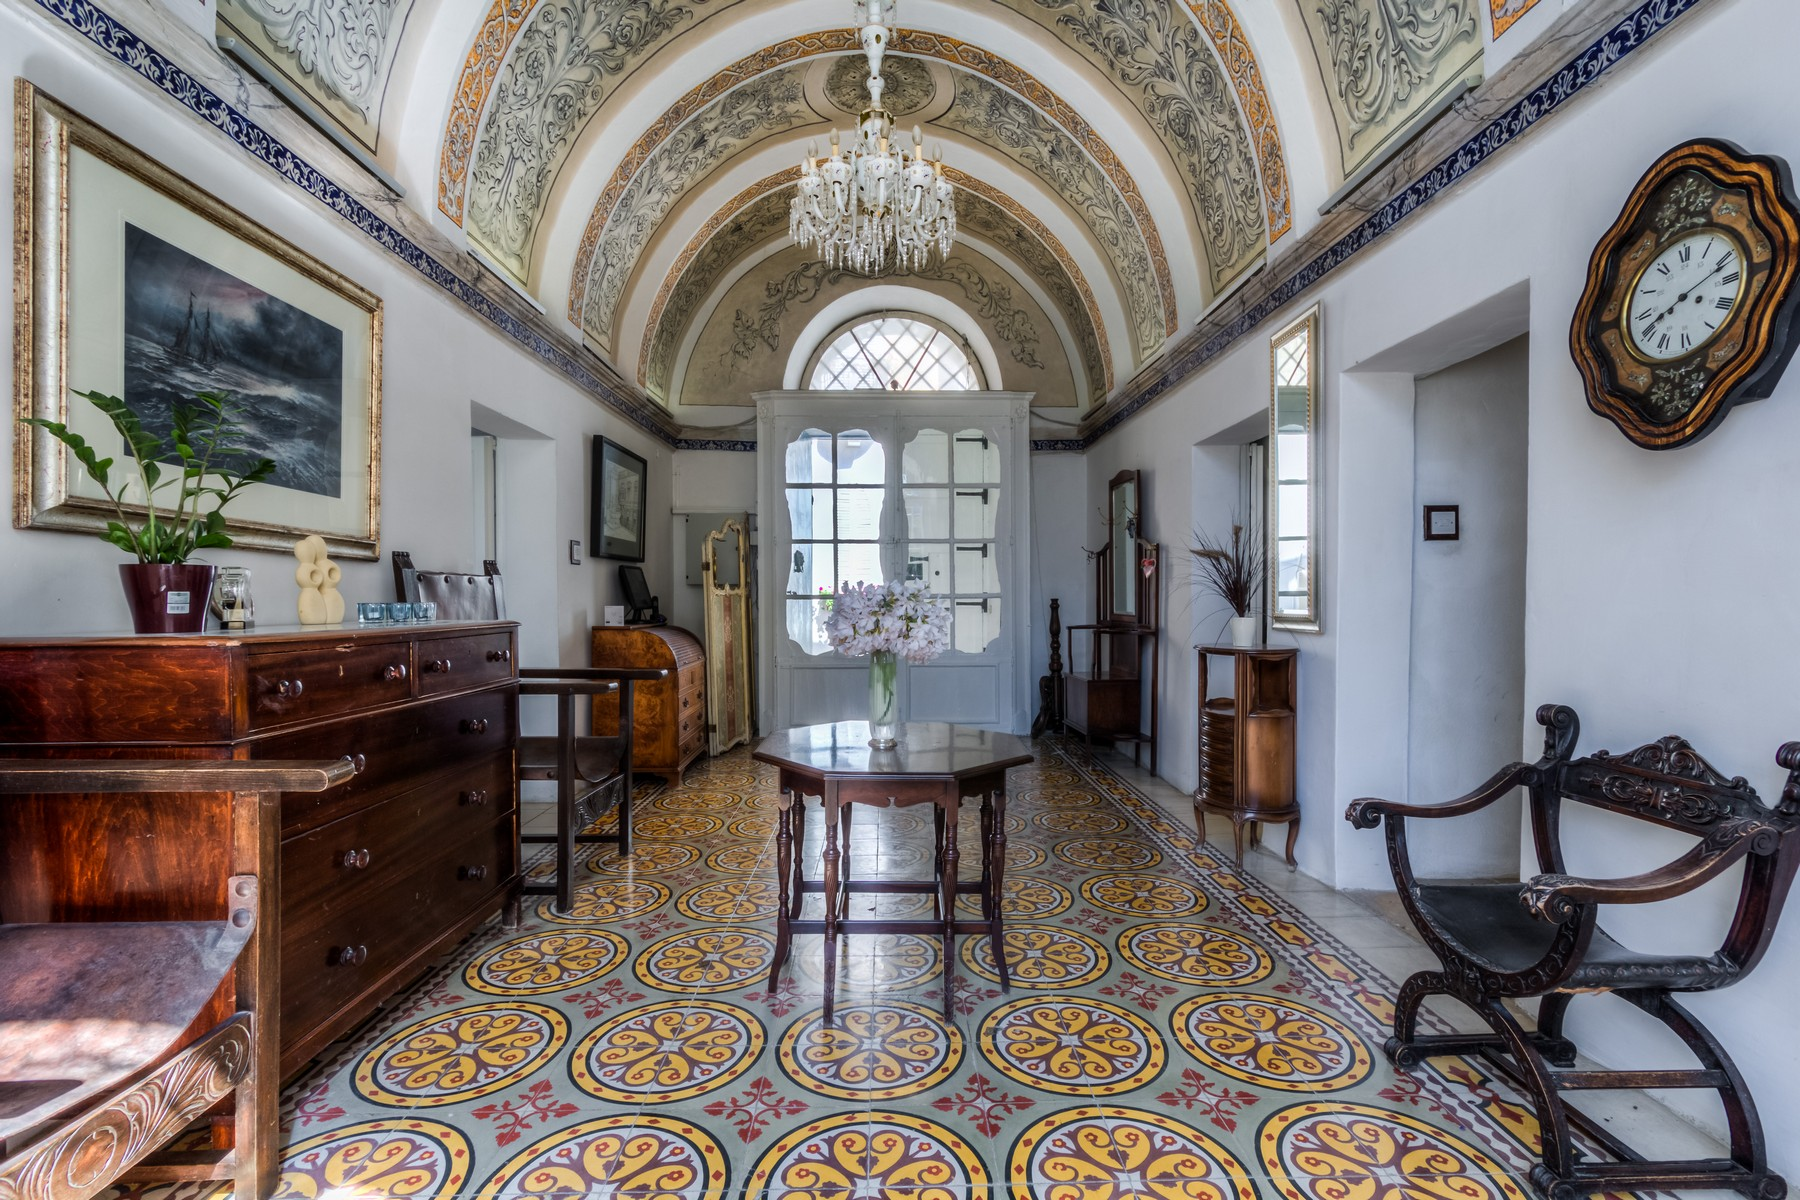 Single Family Home for Sale at Palazzino Attard, Malta